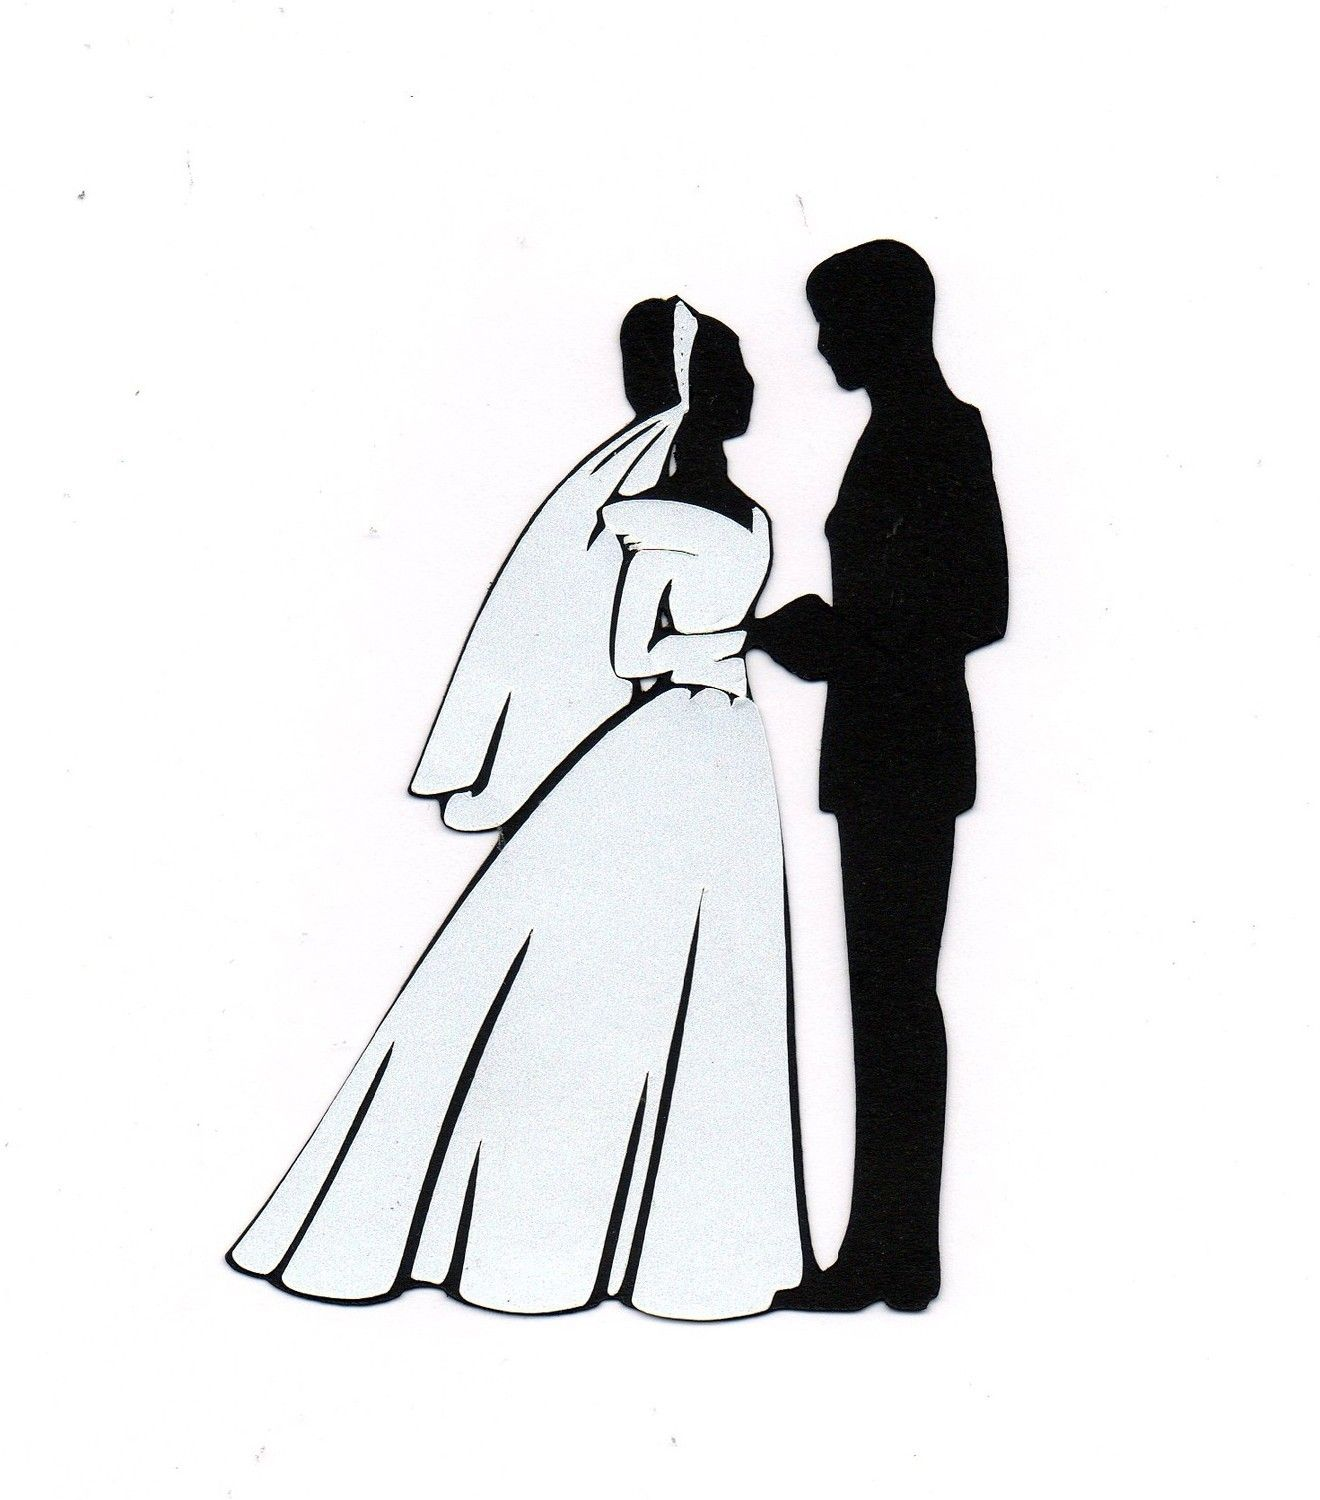 bride and groom silhouette clipart at getdrawings com free for rh getdrawings com bride groom clipart black and white bride and groom clipart free download